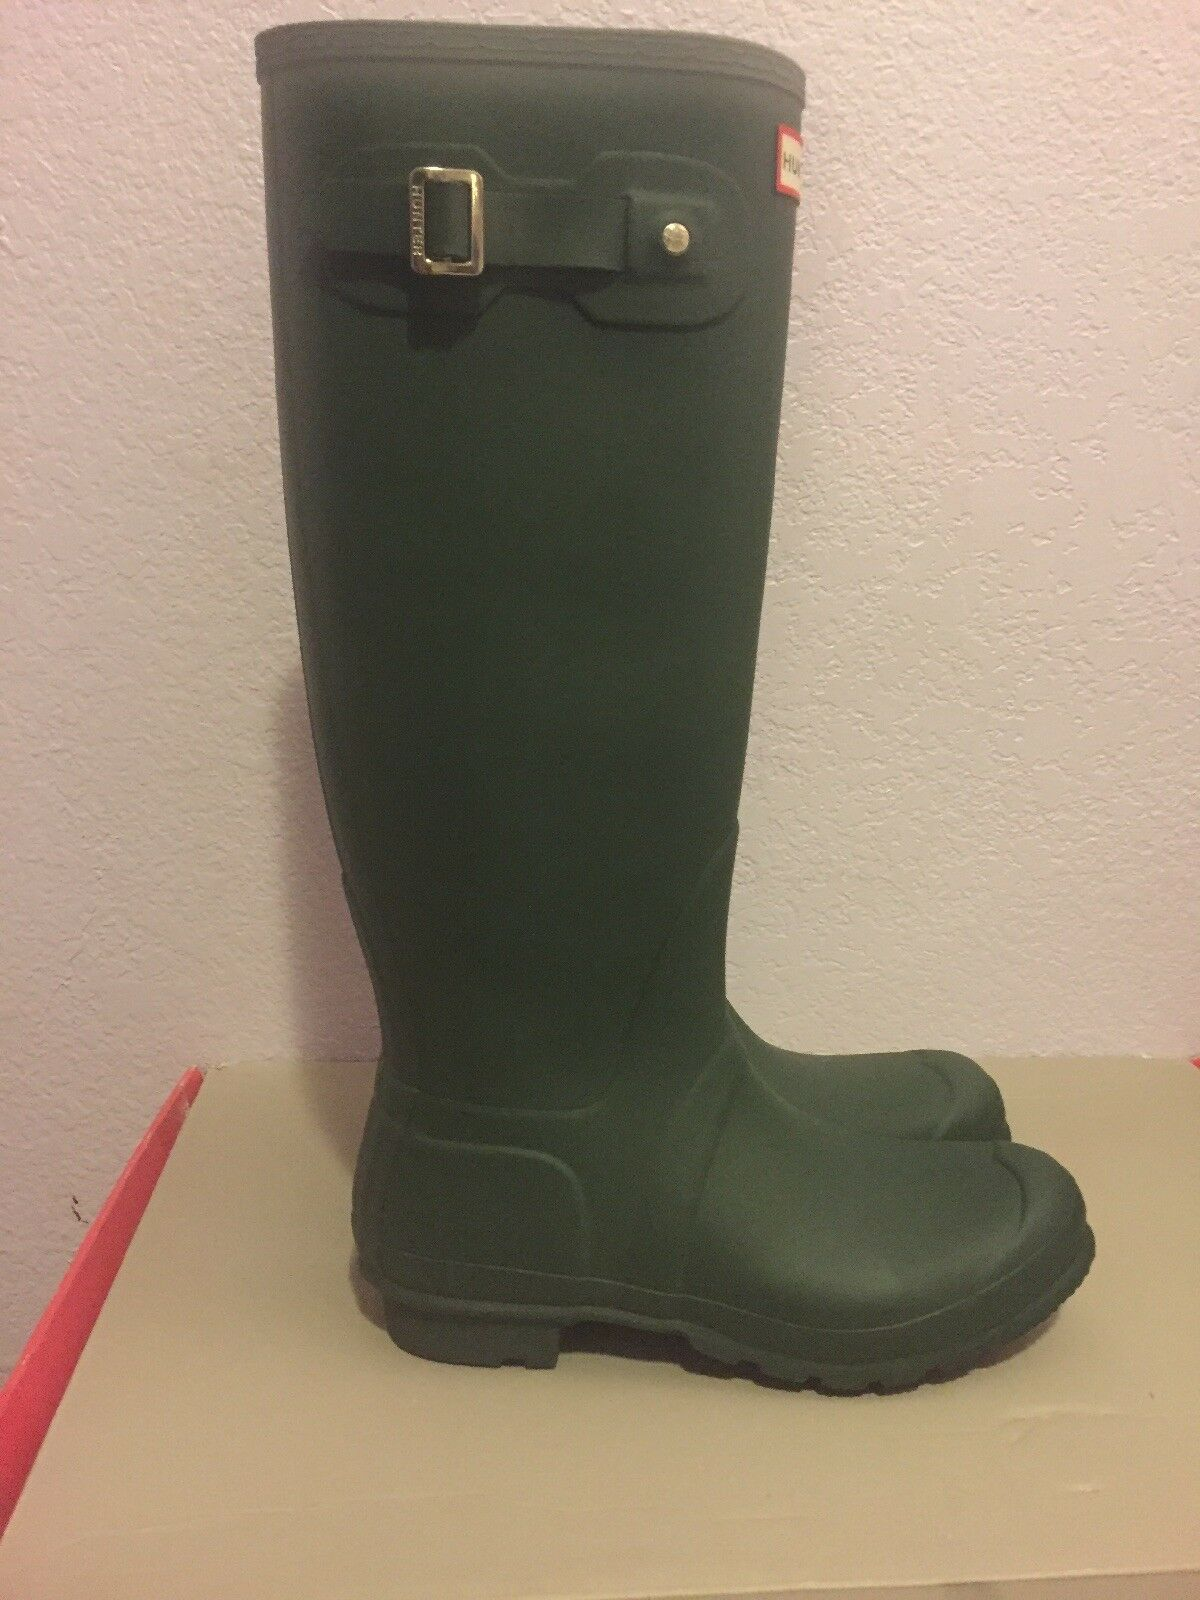 NIB Hunter Women's Original Tall Rain Rain Rain Rubber Boots in Green NEW in Box Size 9 080d7b